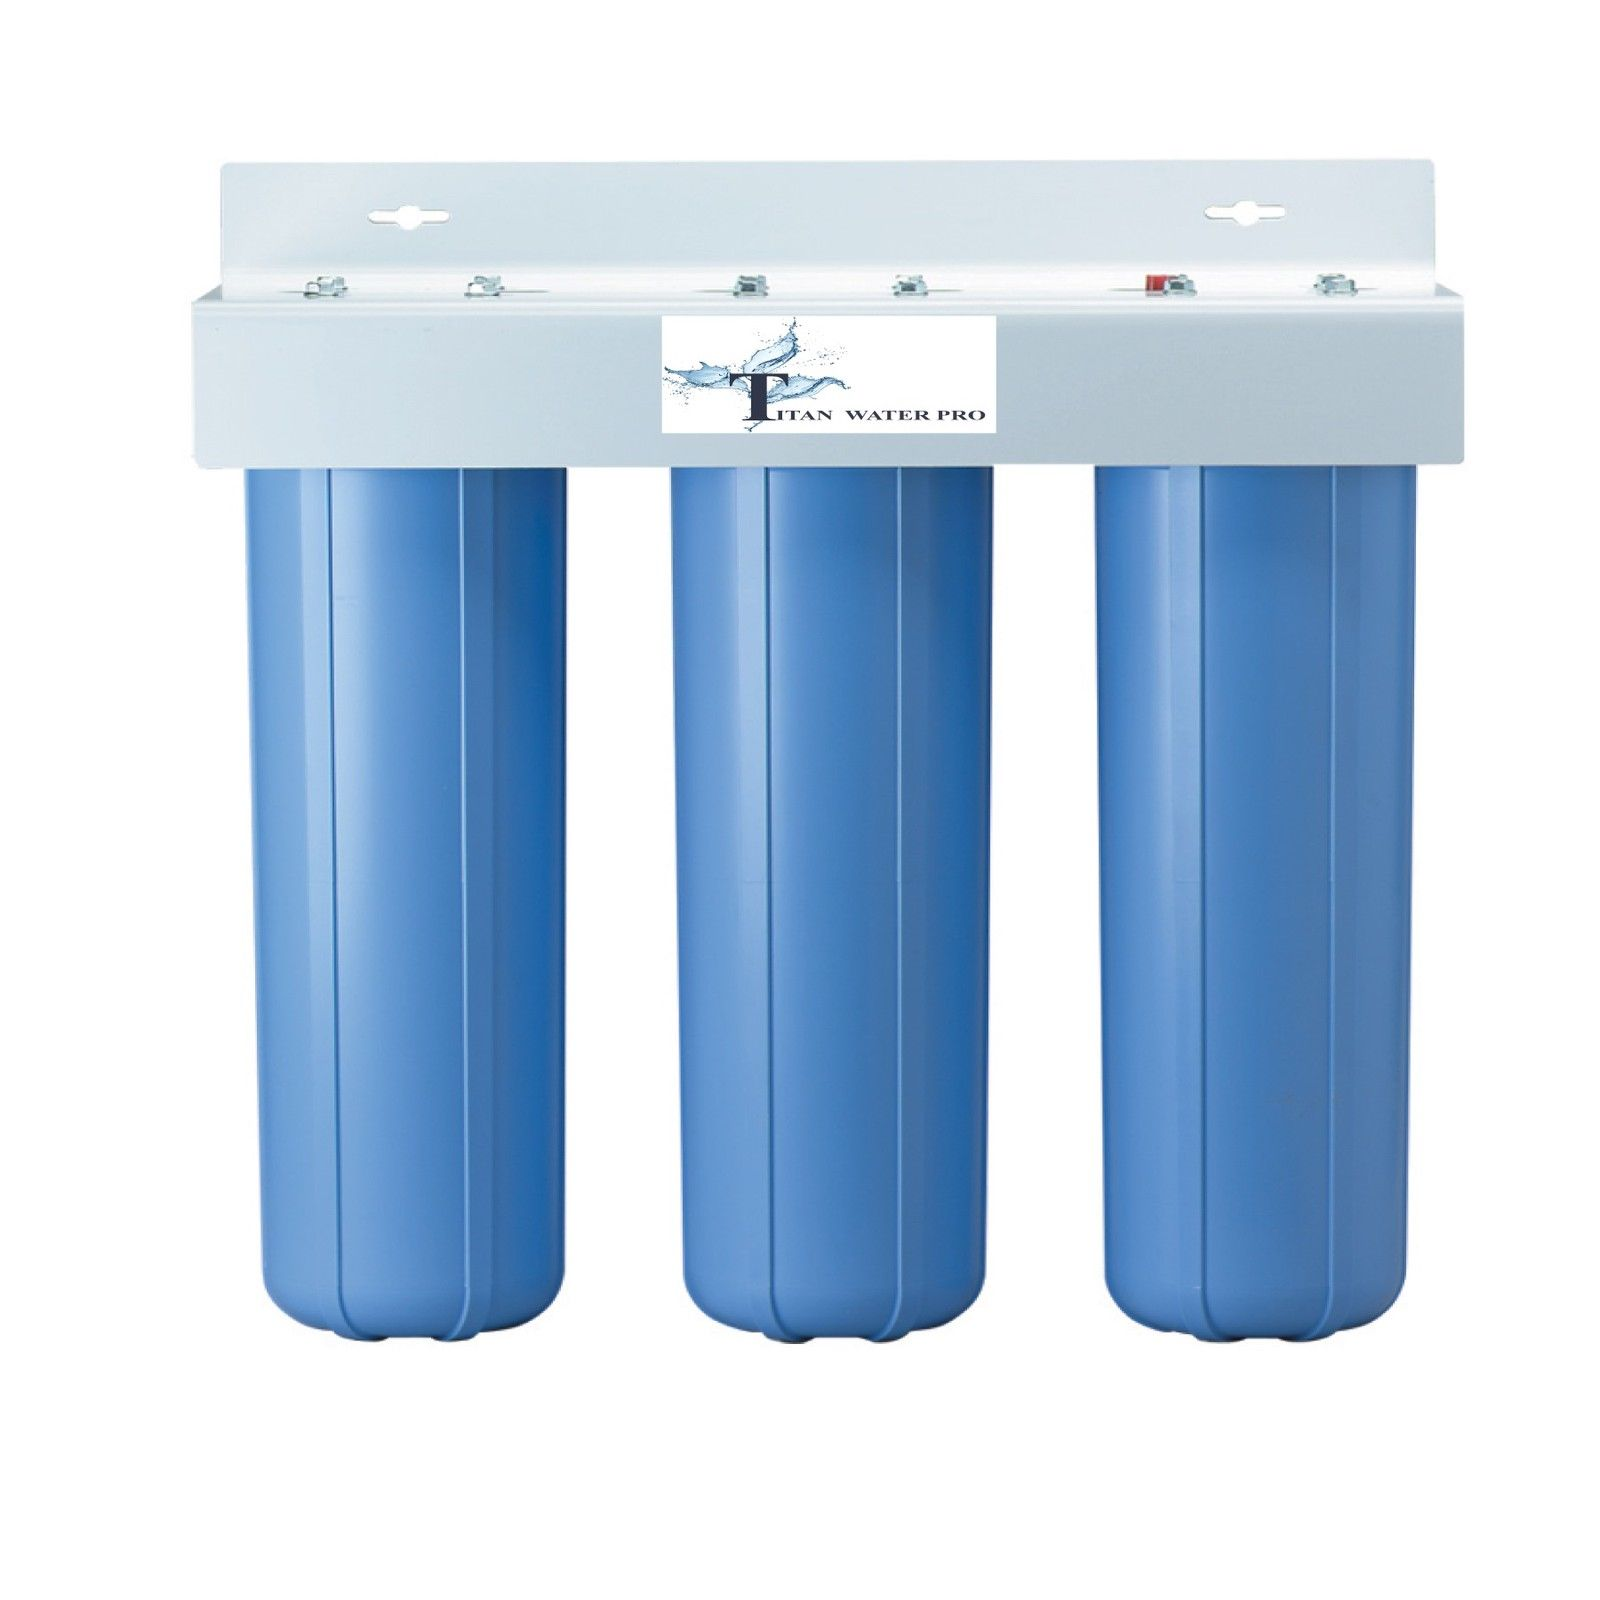 "TRIPLE BIG BLUE HOUSING WATER FILTERS SIZES 4.5"" X 20"" (FILTERS NOT INCLUDED)"